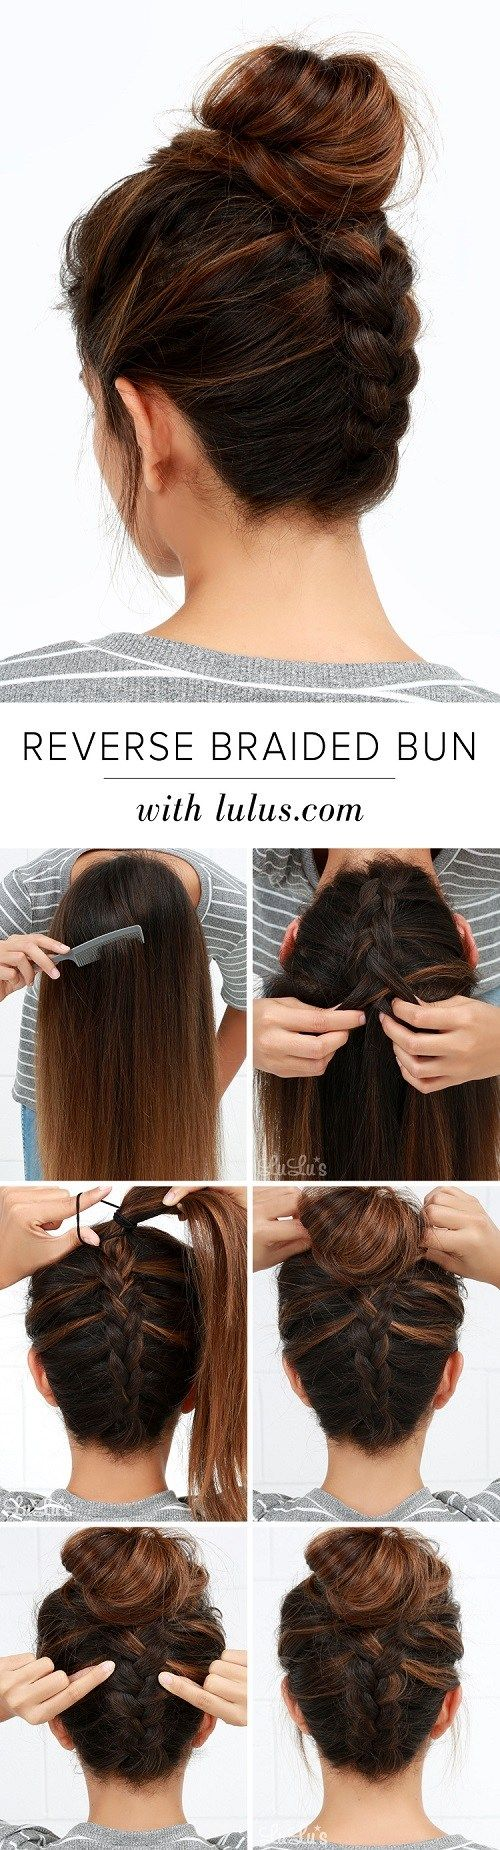 Upside Down Braid And Bun Tutorial                                                                                                                                                                                 More